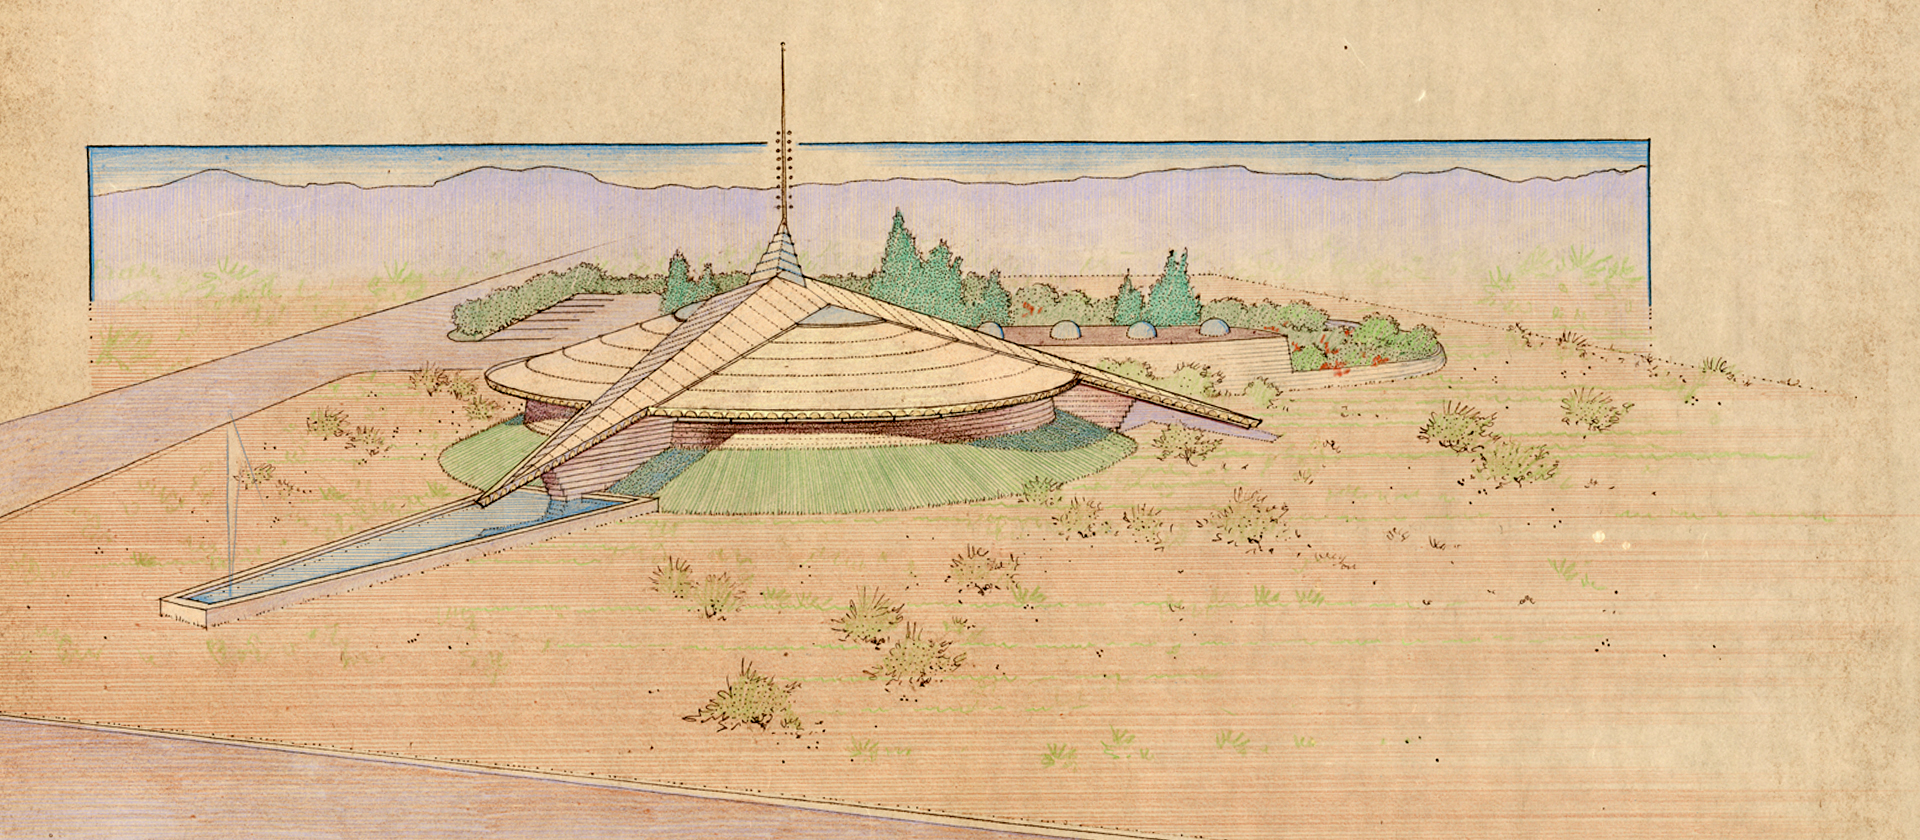 Tuscon Modernism Week - Rendering by John H. Howe for the screening of the film John H. Howe, Architect, Frank Lloyd Wright's Master of Perspective